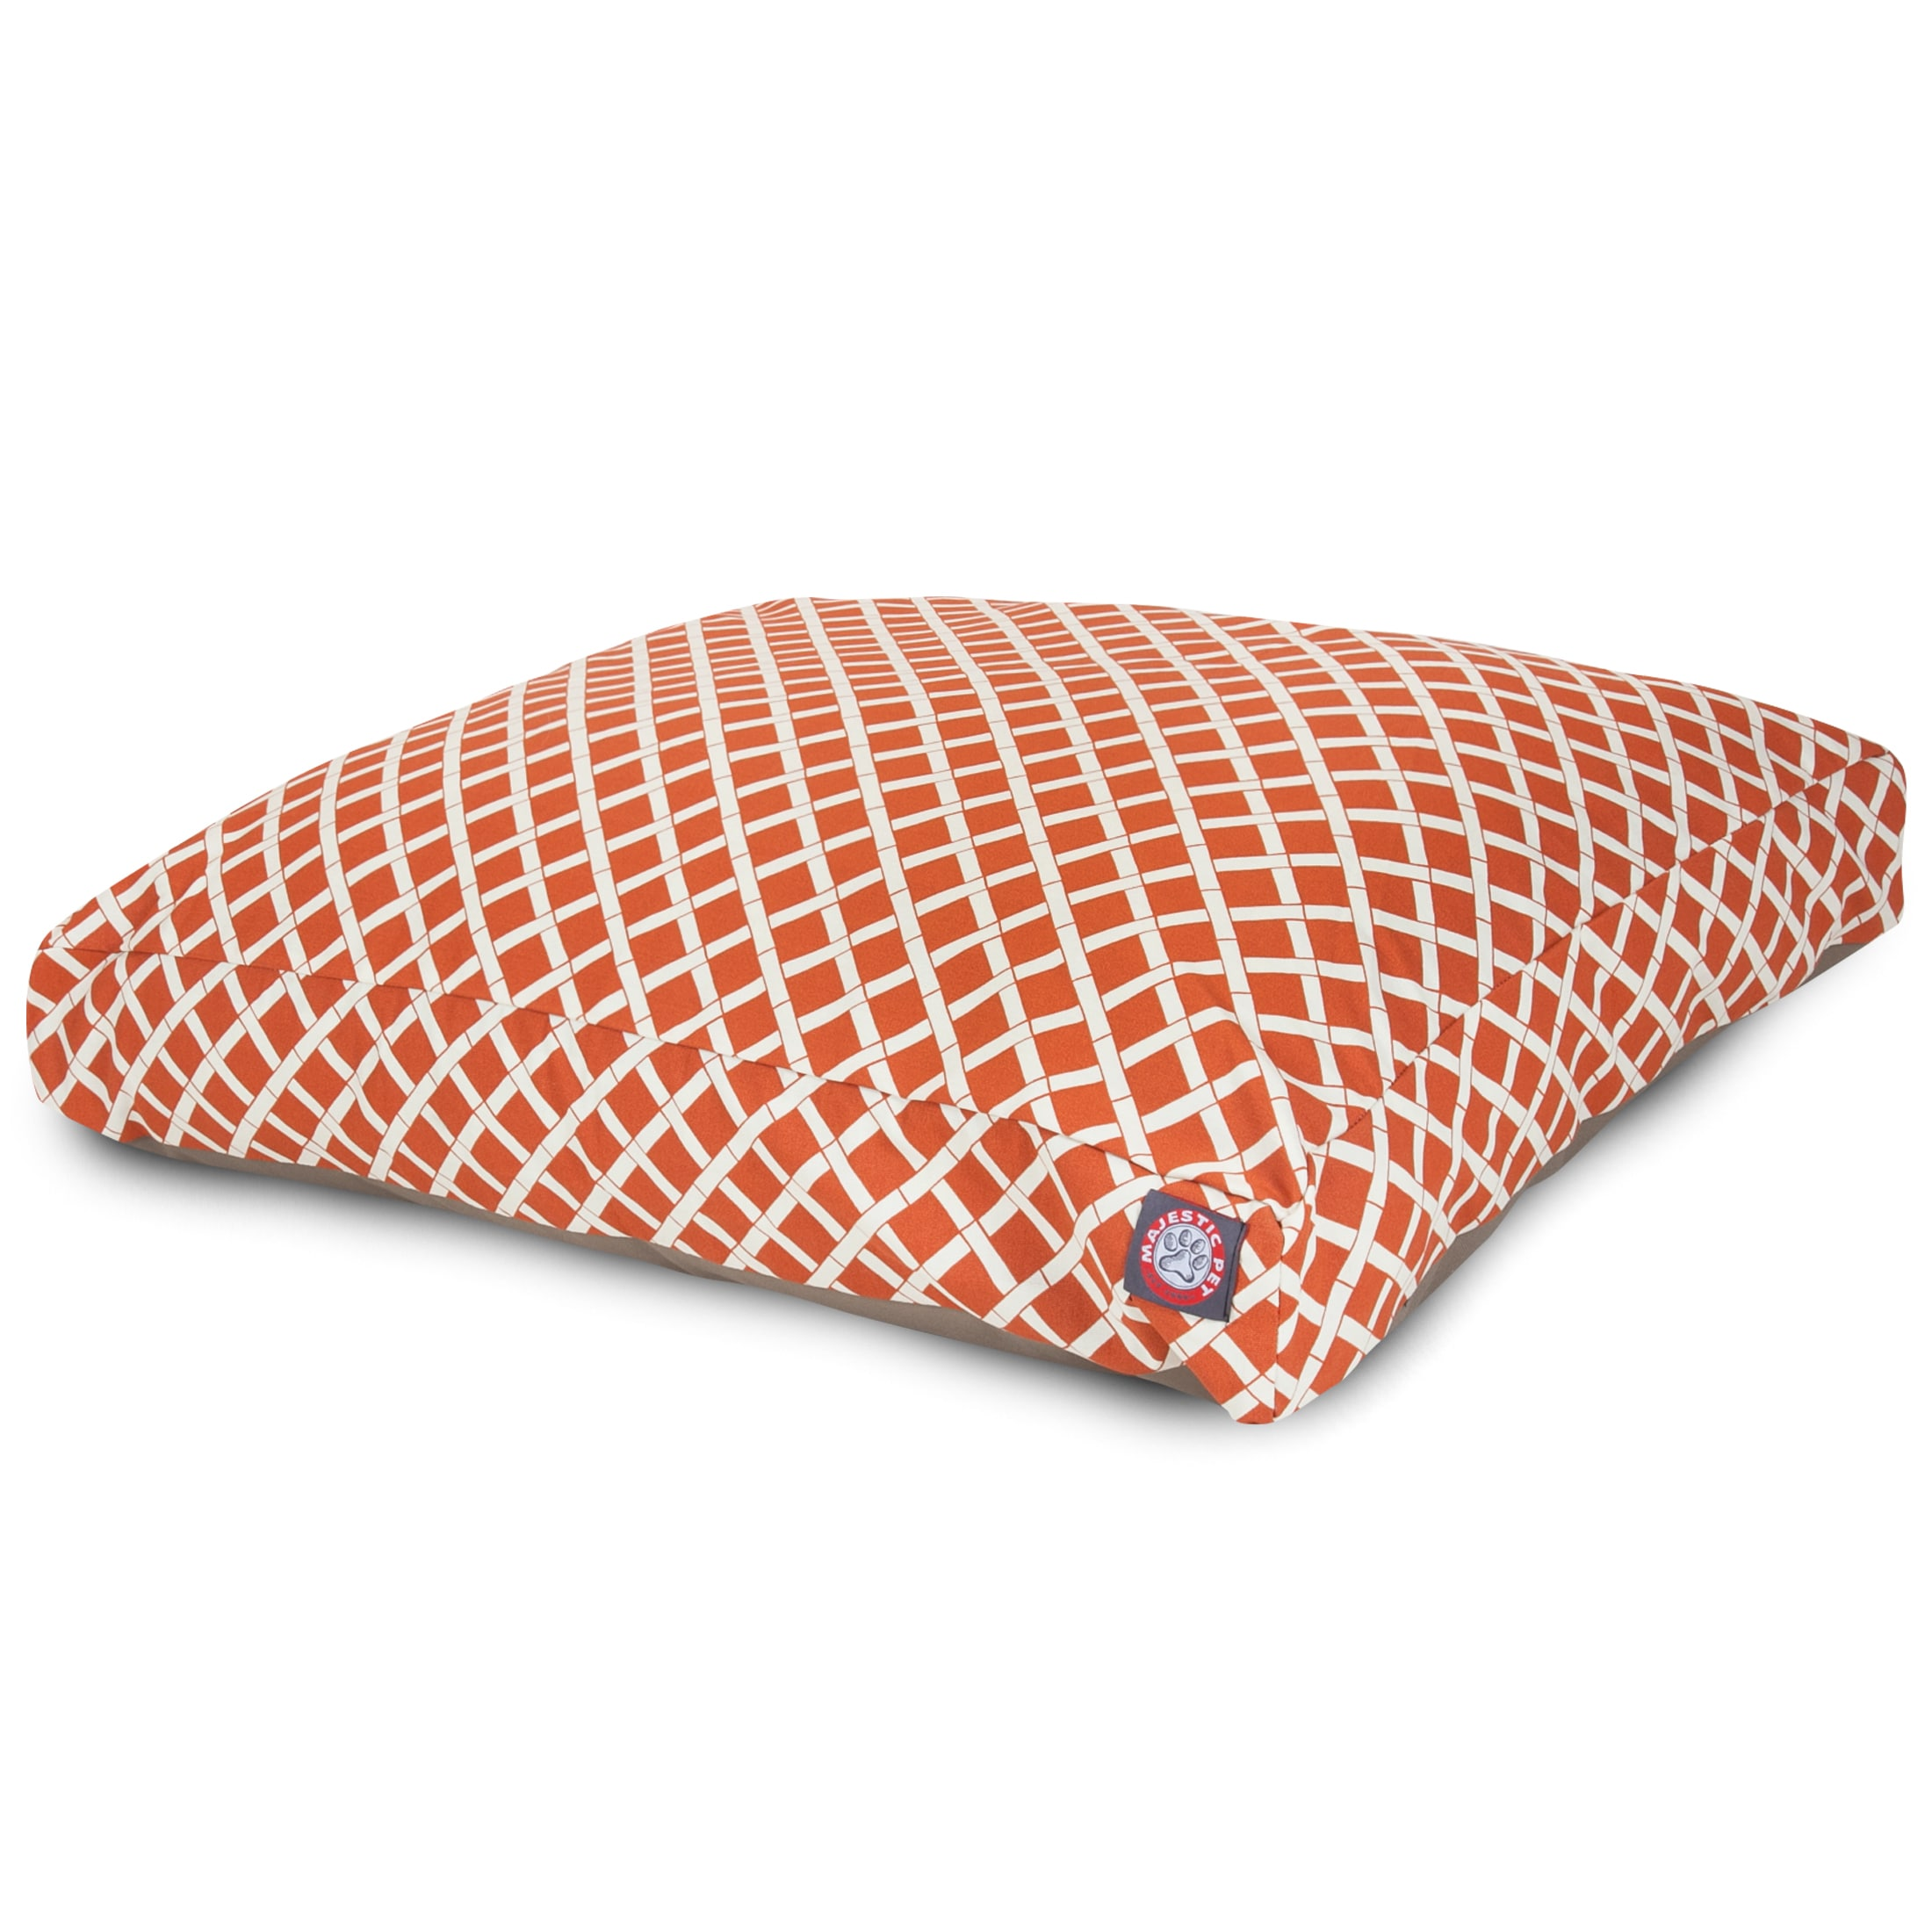 Bamboo Outdoor Indoor Rectangle Dog Bed by Majestic Pet (...